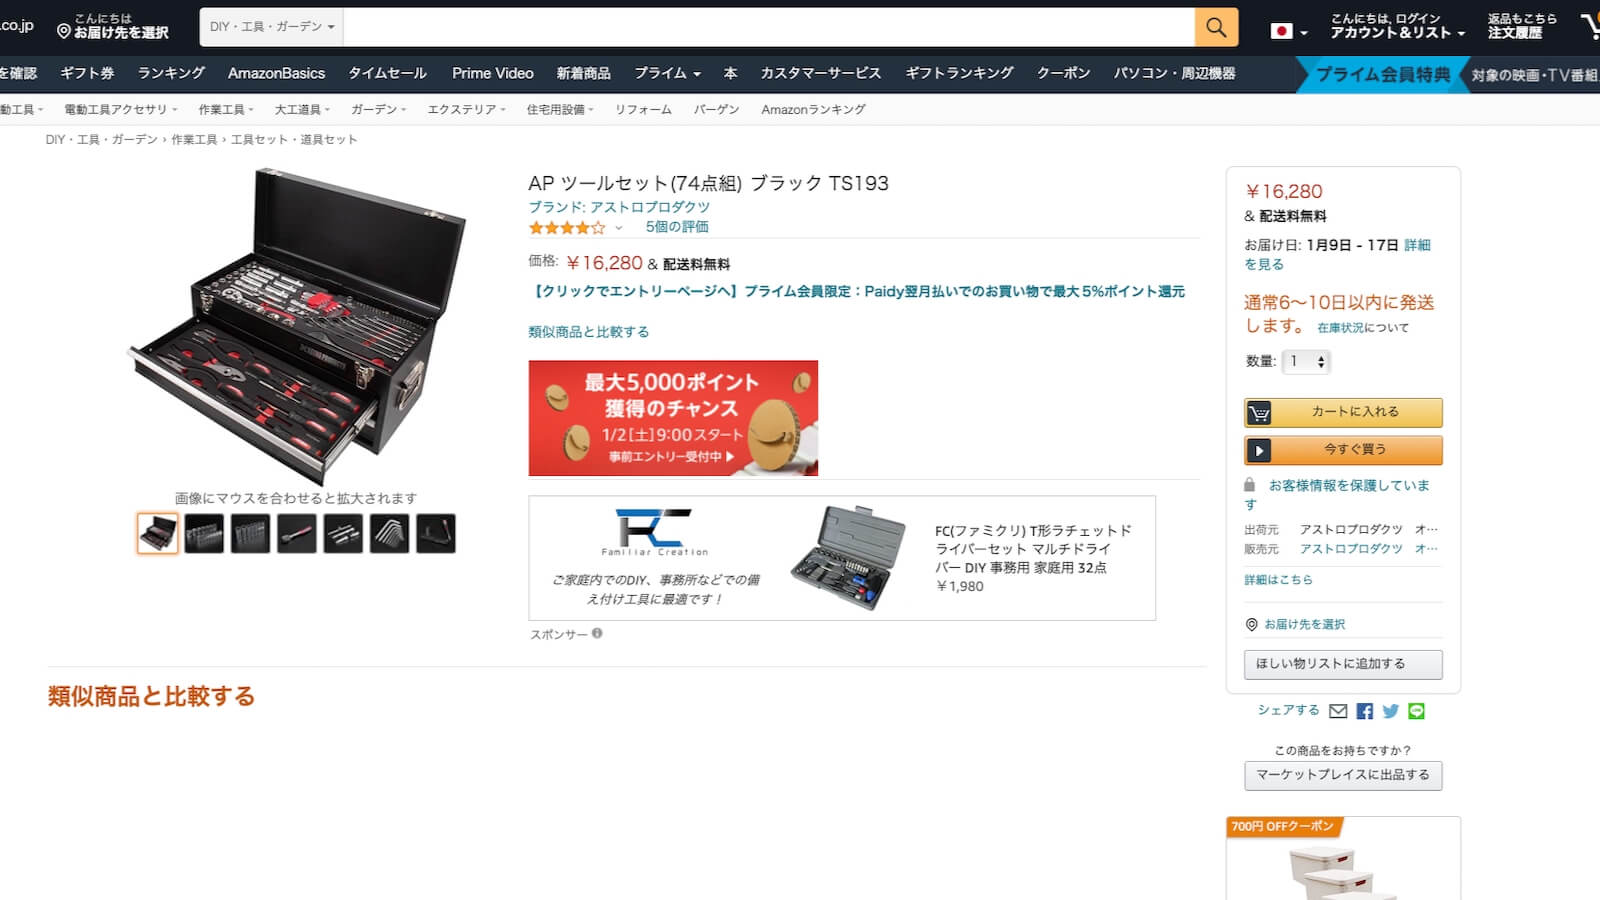 Amazon product listing screen capture